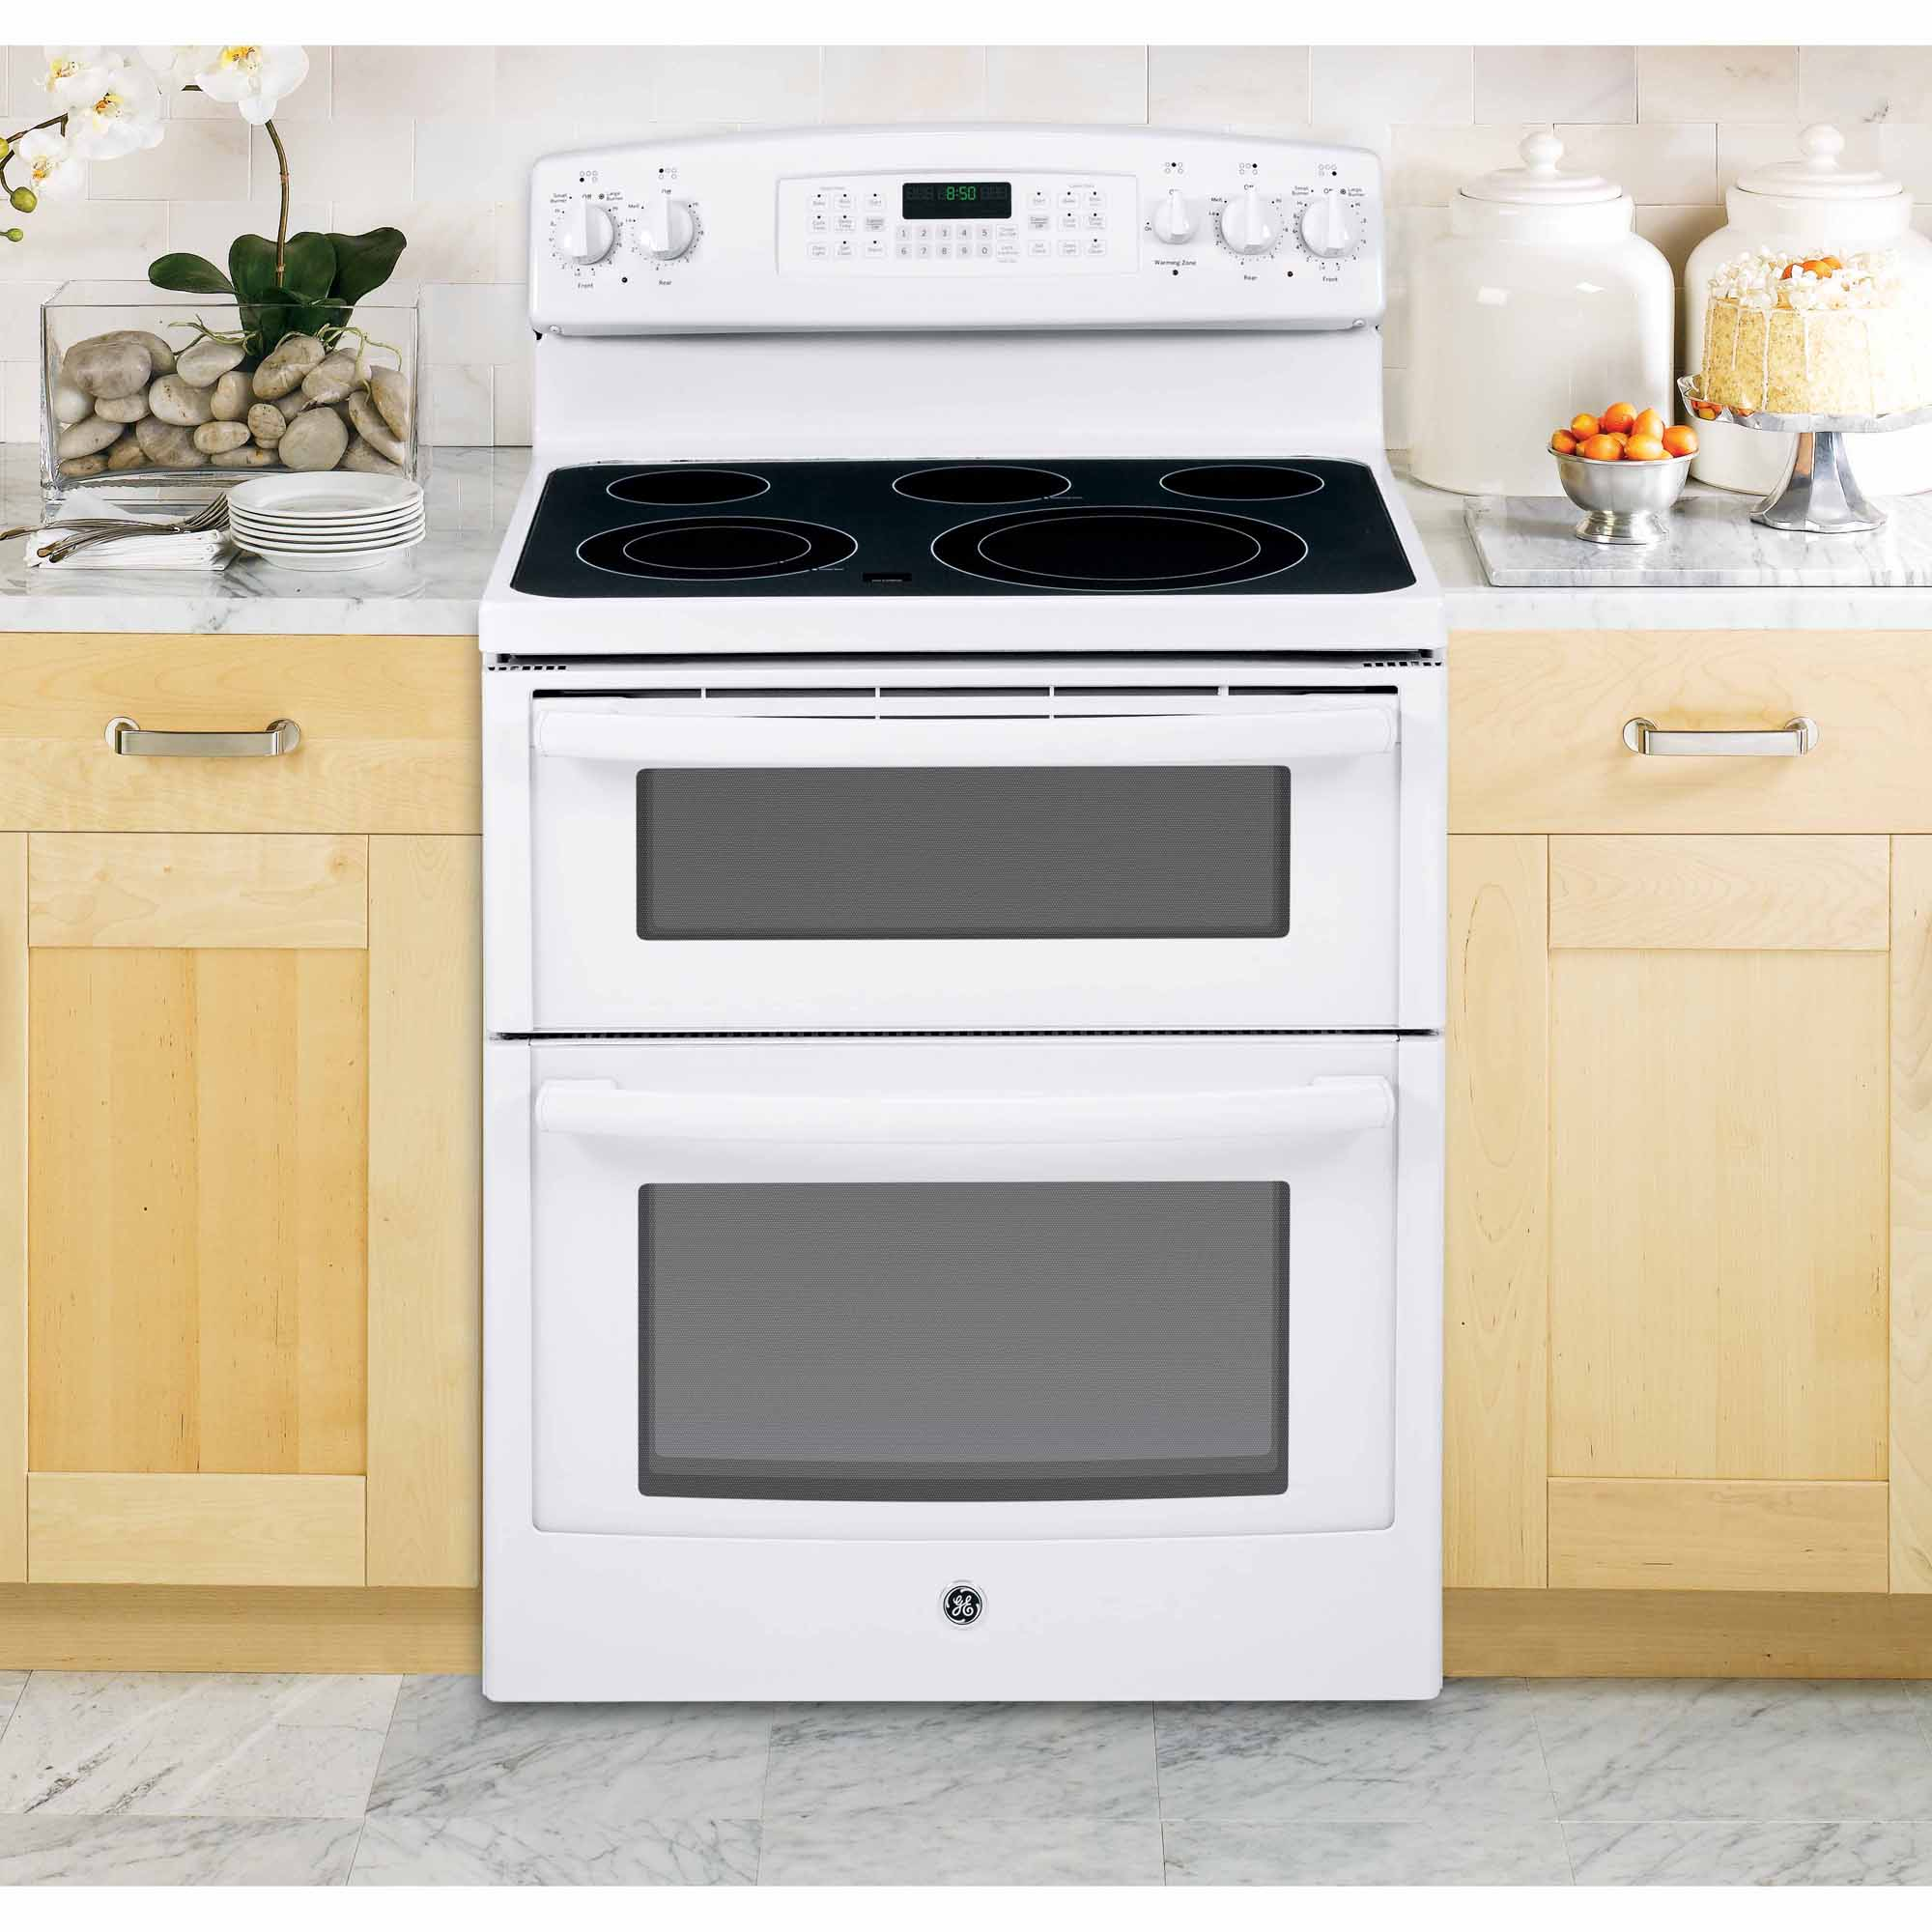 GE Appliances 6.6 cu. ft. Electric Range w/ Double Oven - White